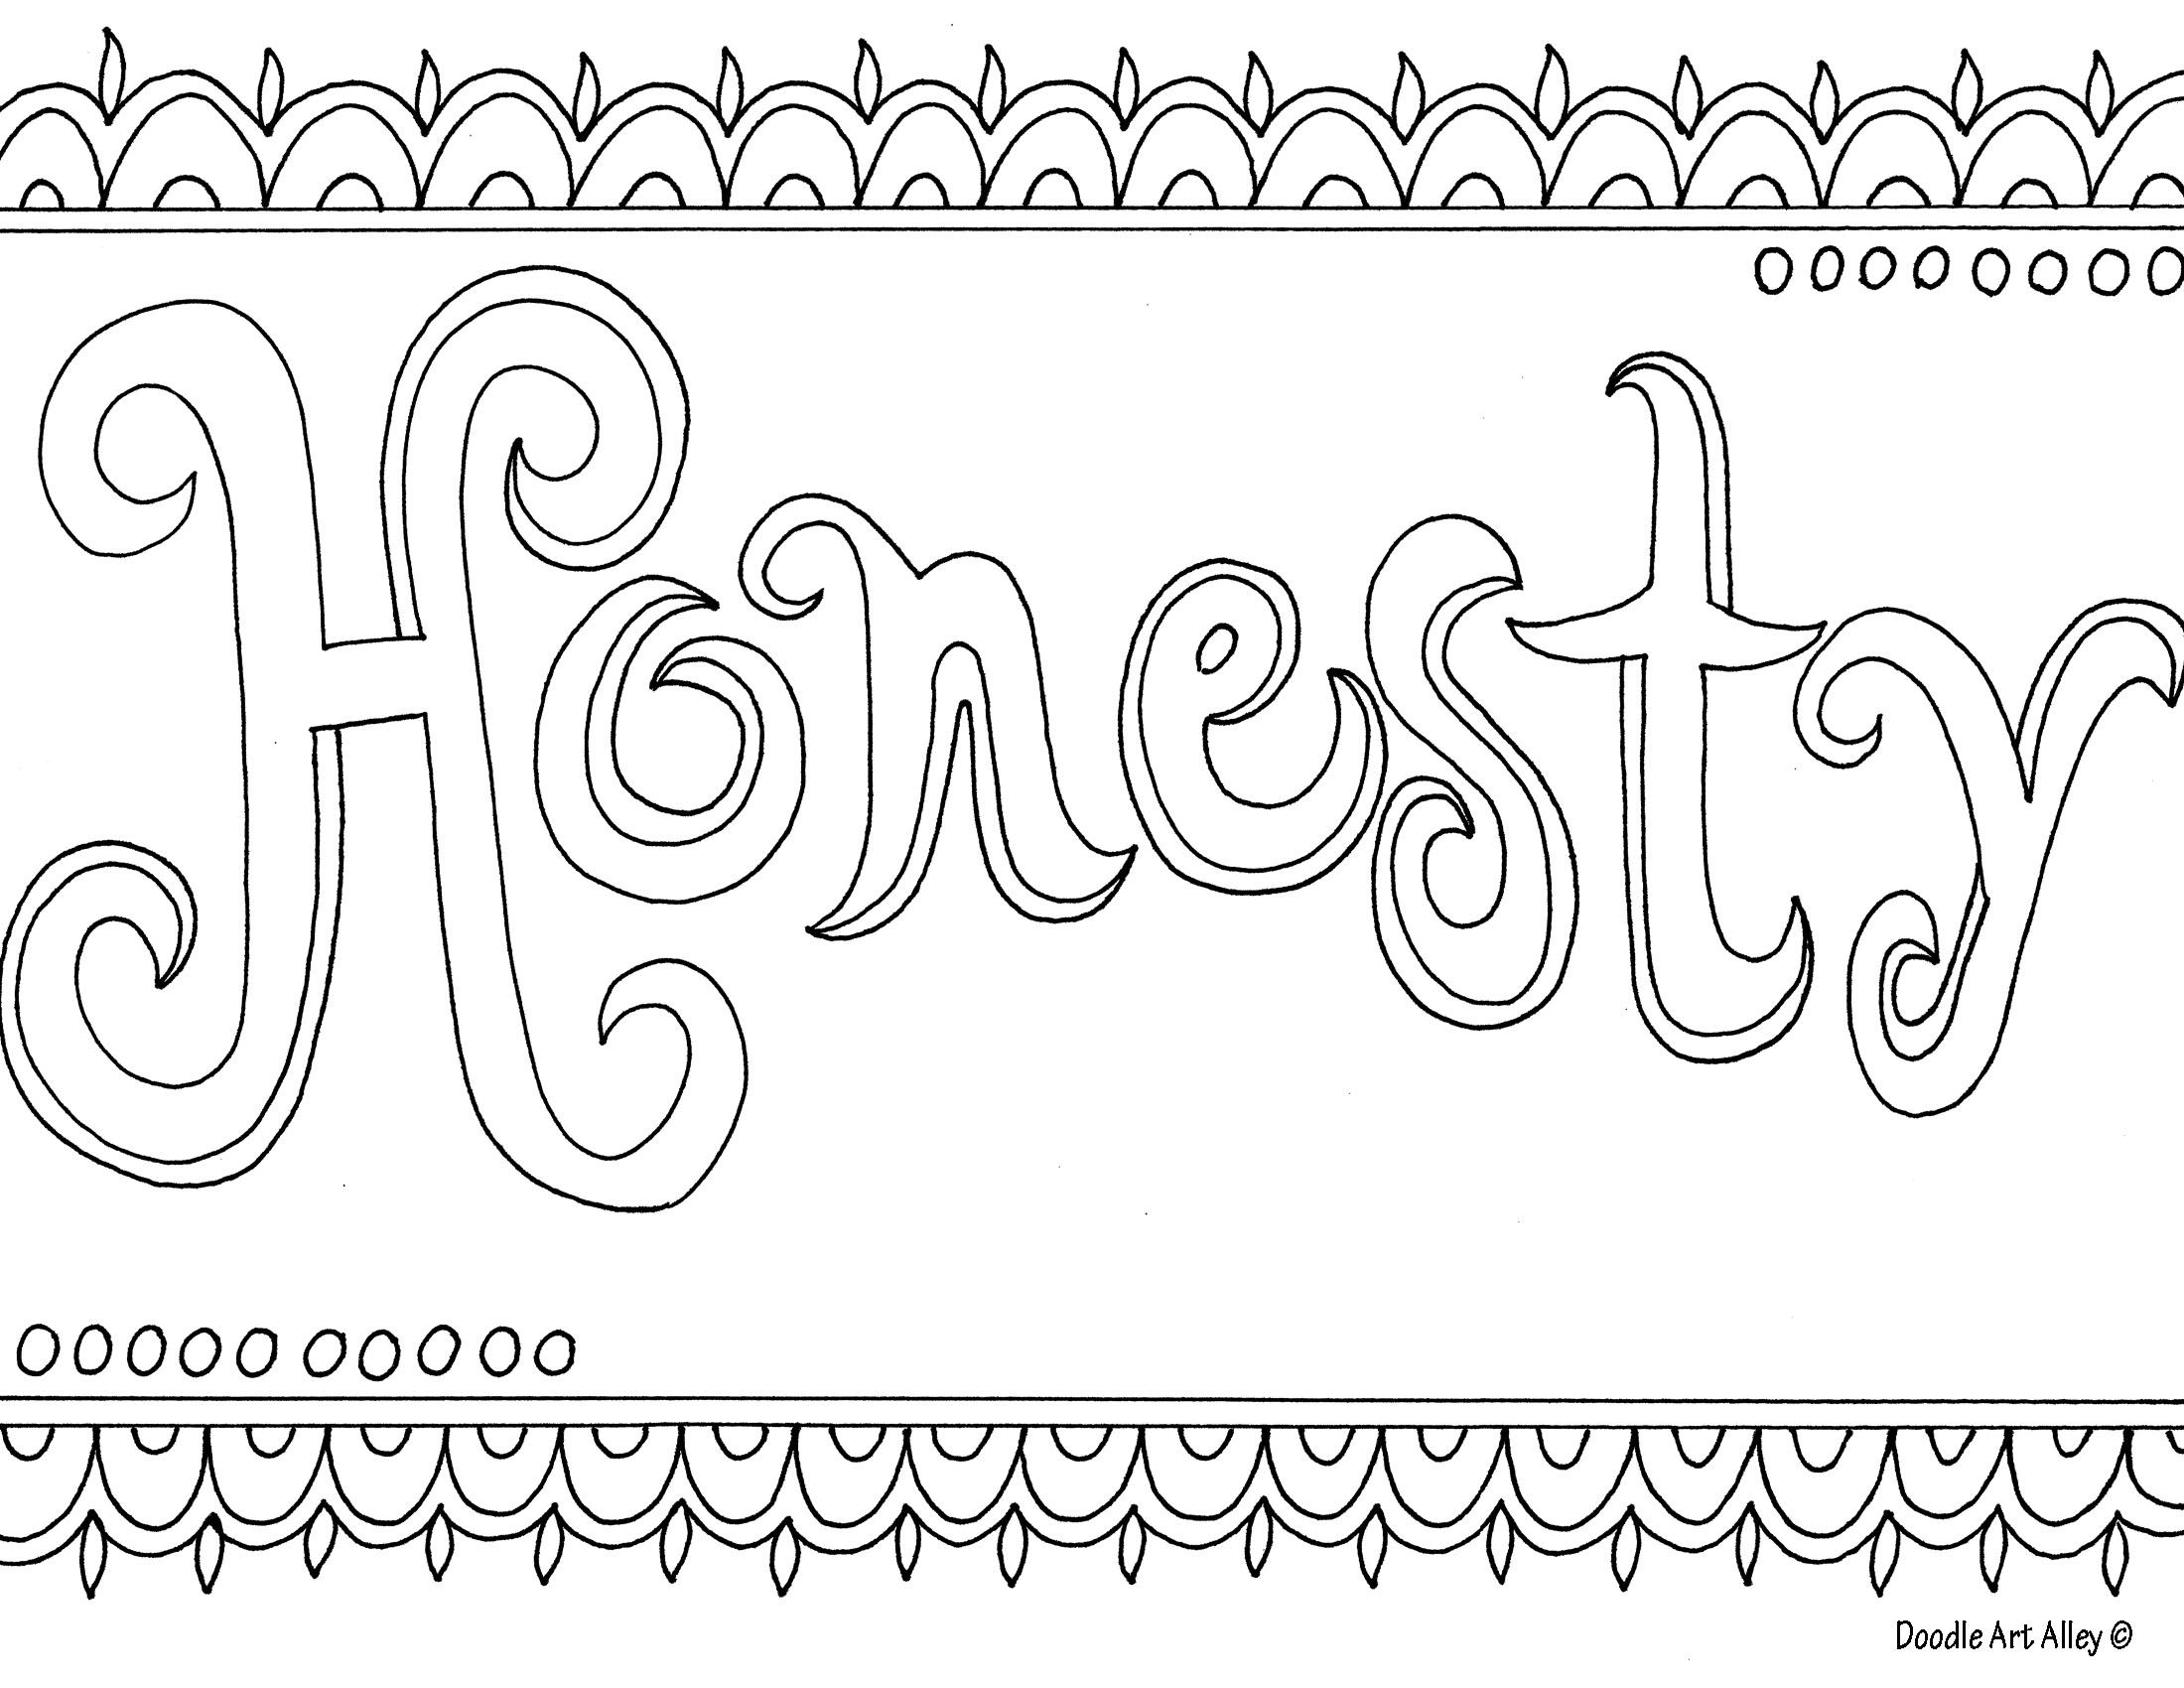 The Law Honest And Fair Coloring Page Girl Scout Daisy Petals